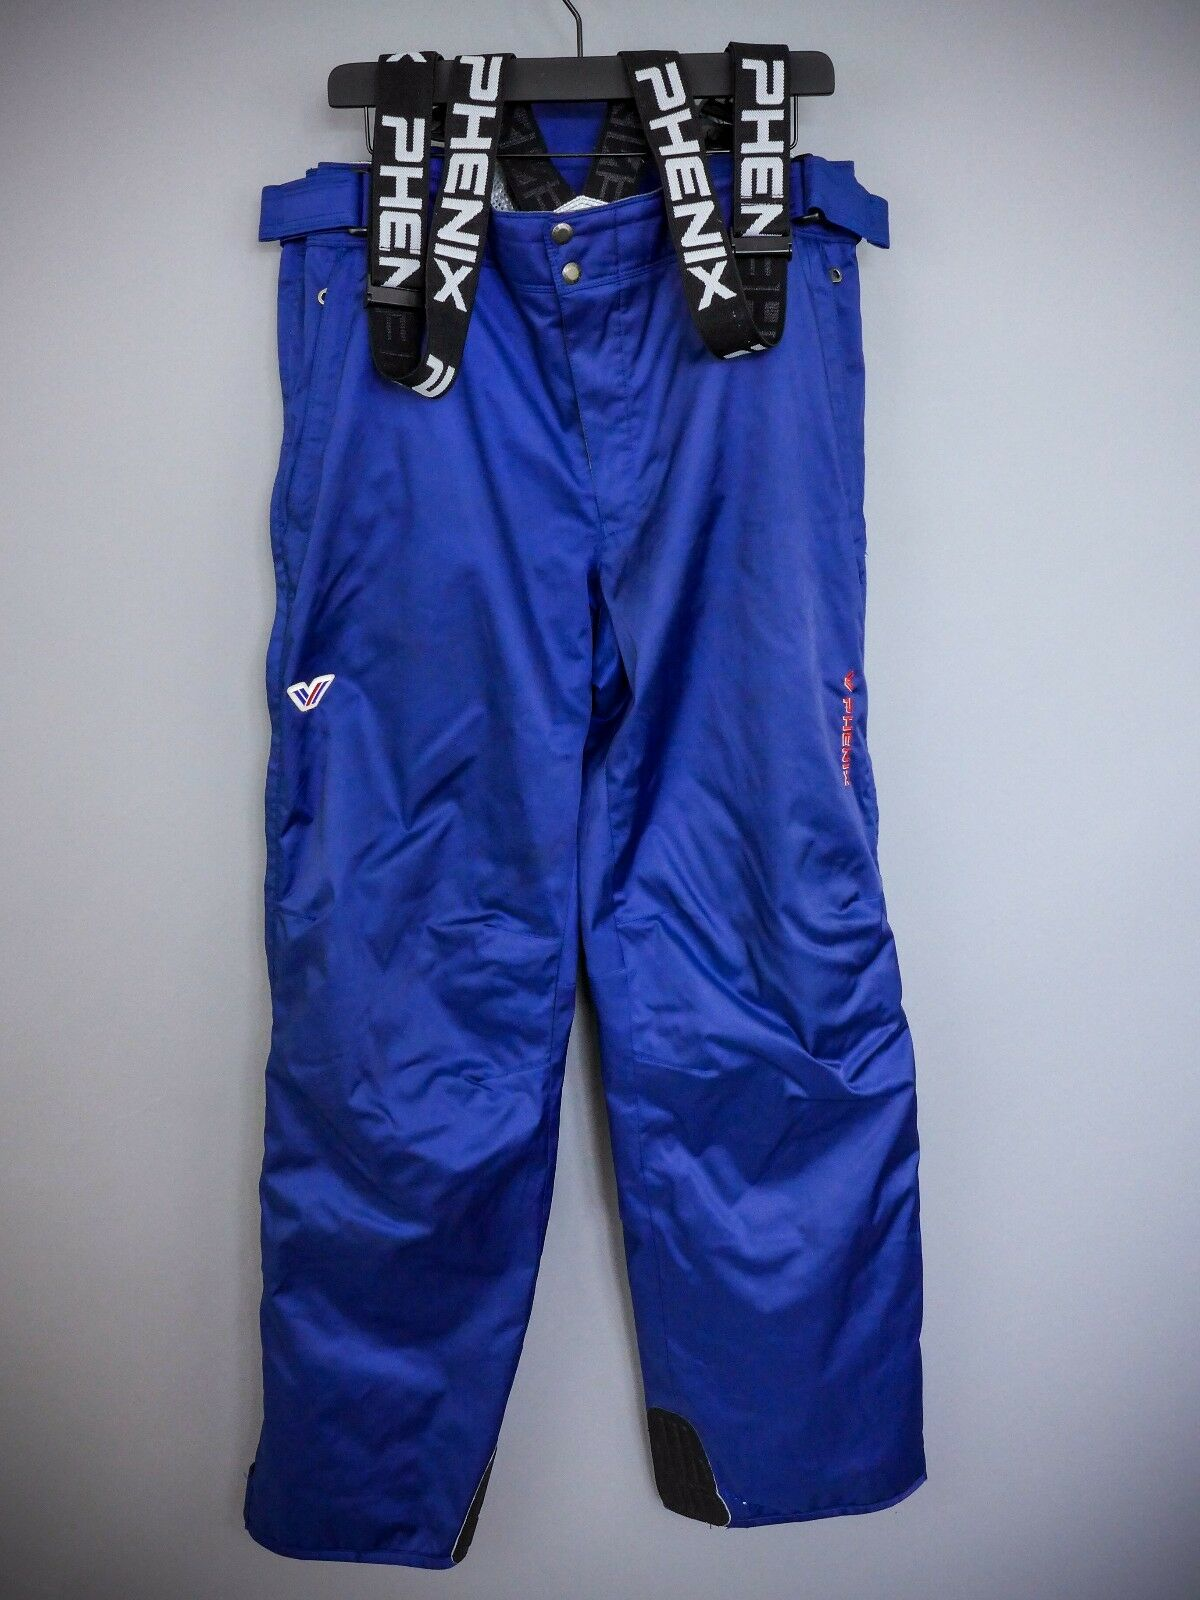 XII355 Men Phenix bluee Skiing Snowboarding Salopettes  W38 L33  choices with low price